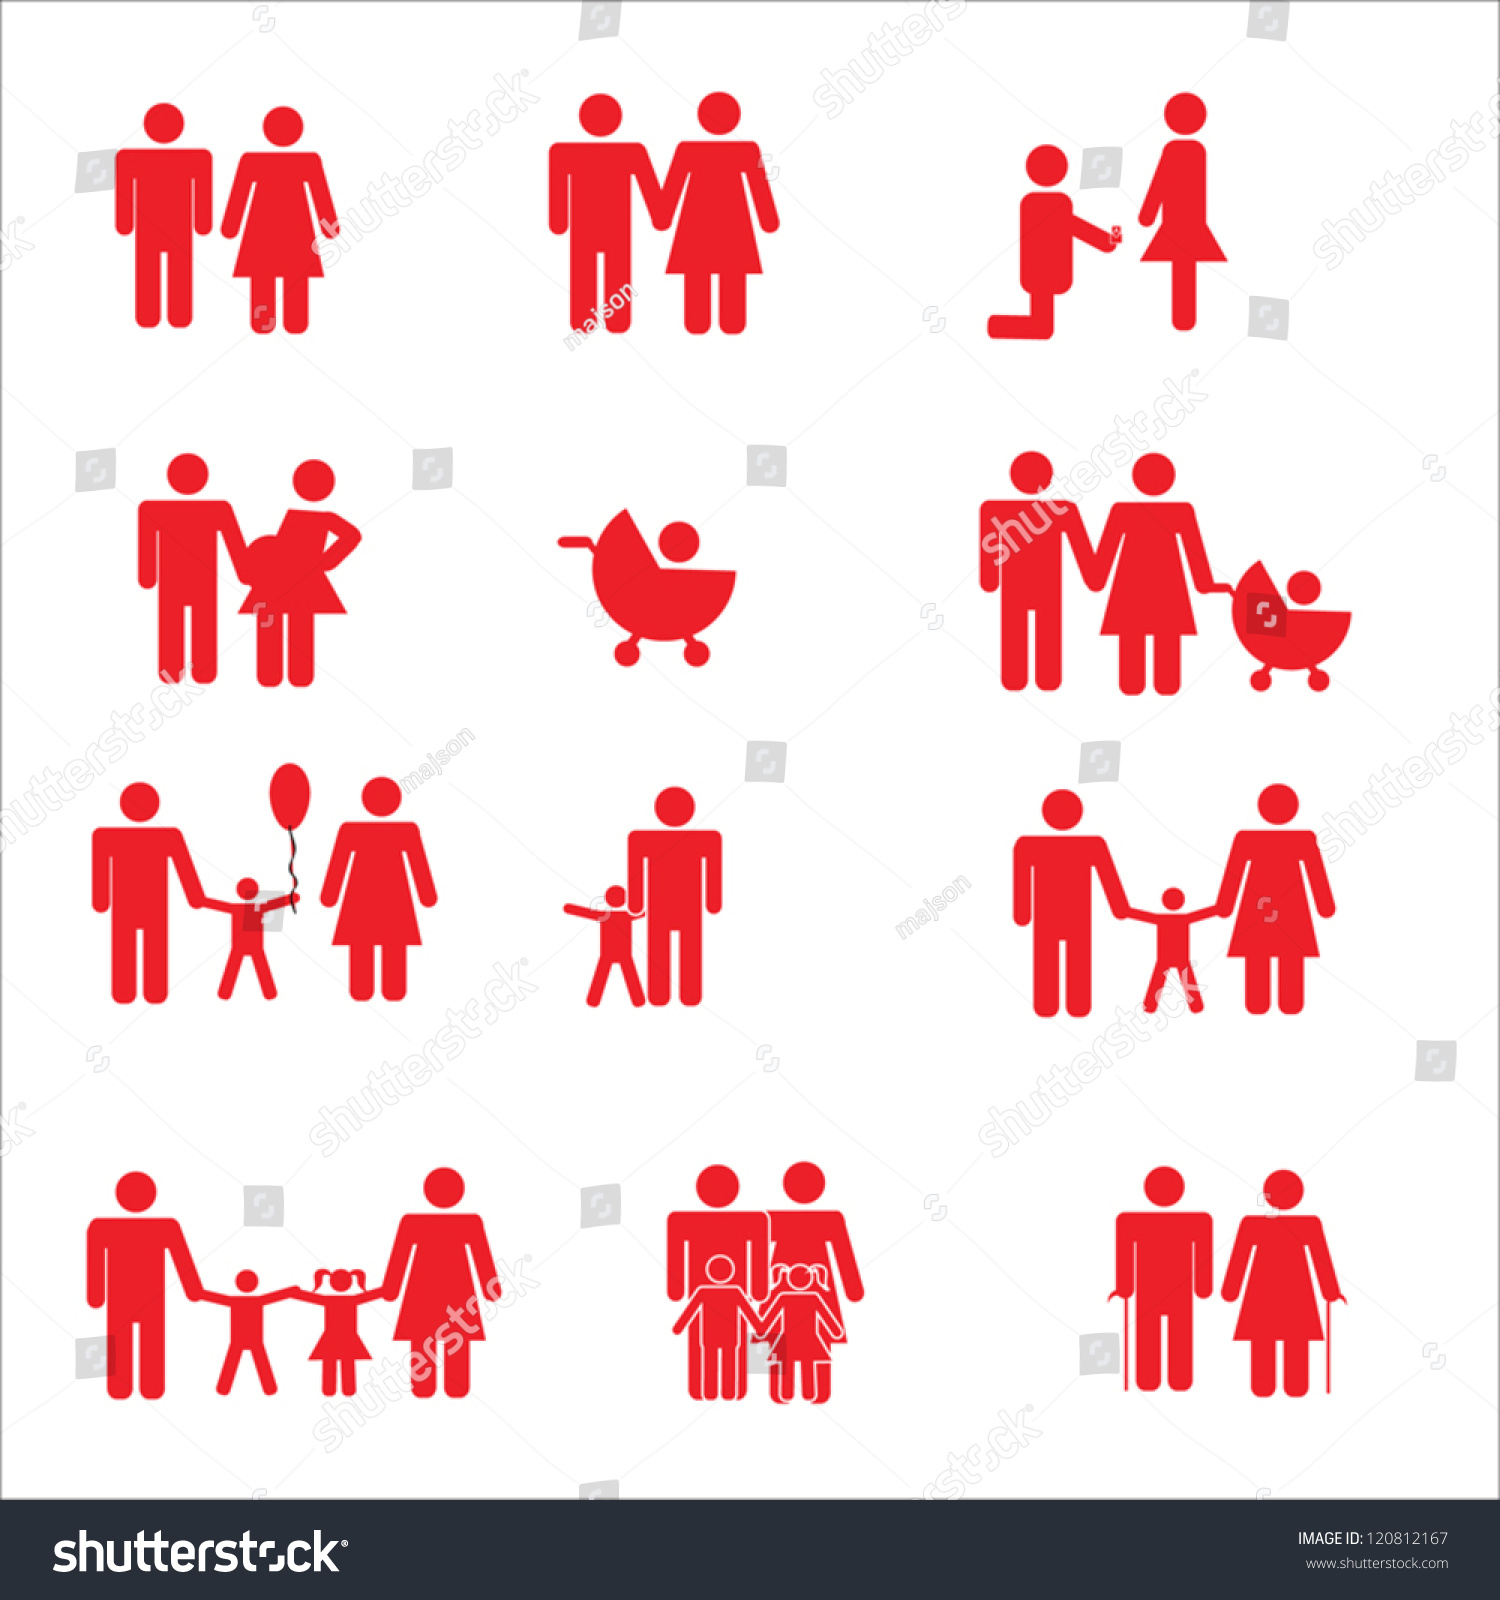 Family Pictogram Set Red Color Pictogram Stock Vector 120812167 ...